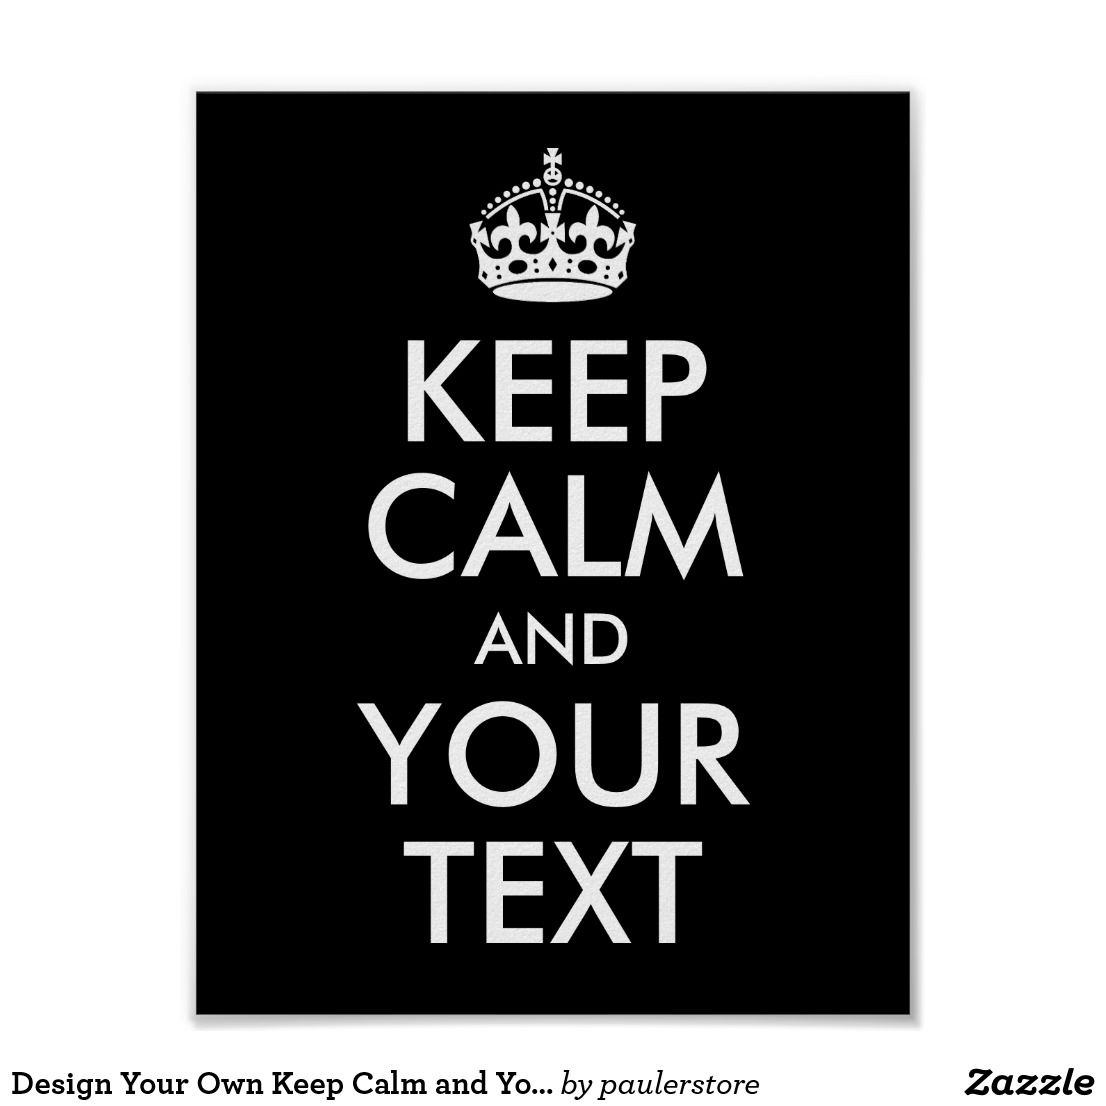 Poster design your own - Design Your Own Keep Calm And Your Text Poster